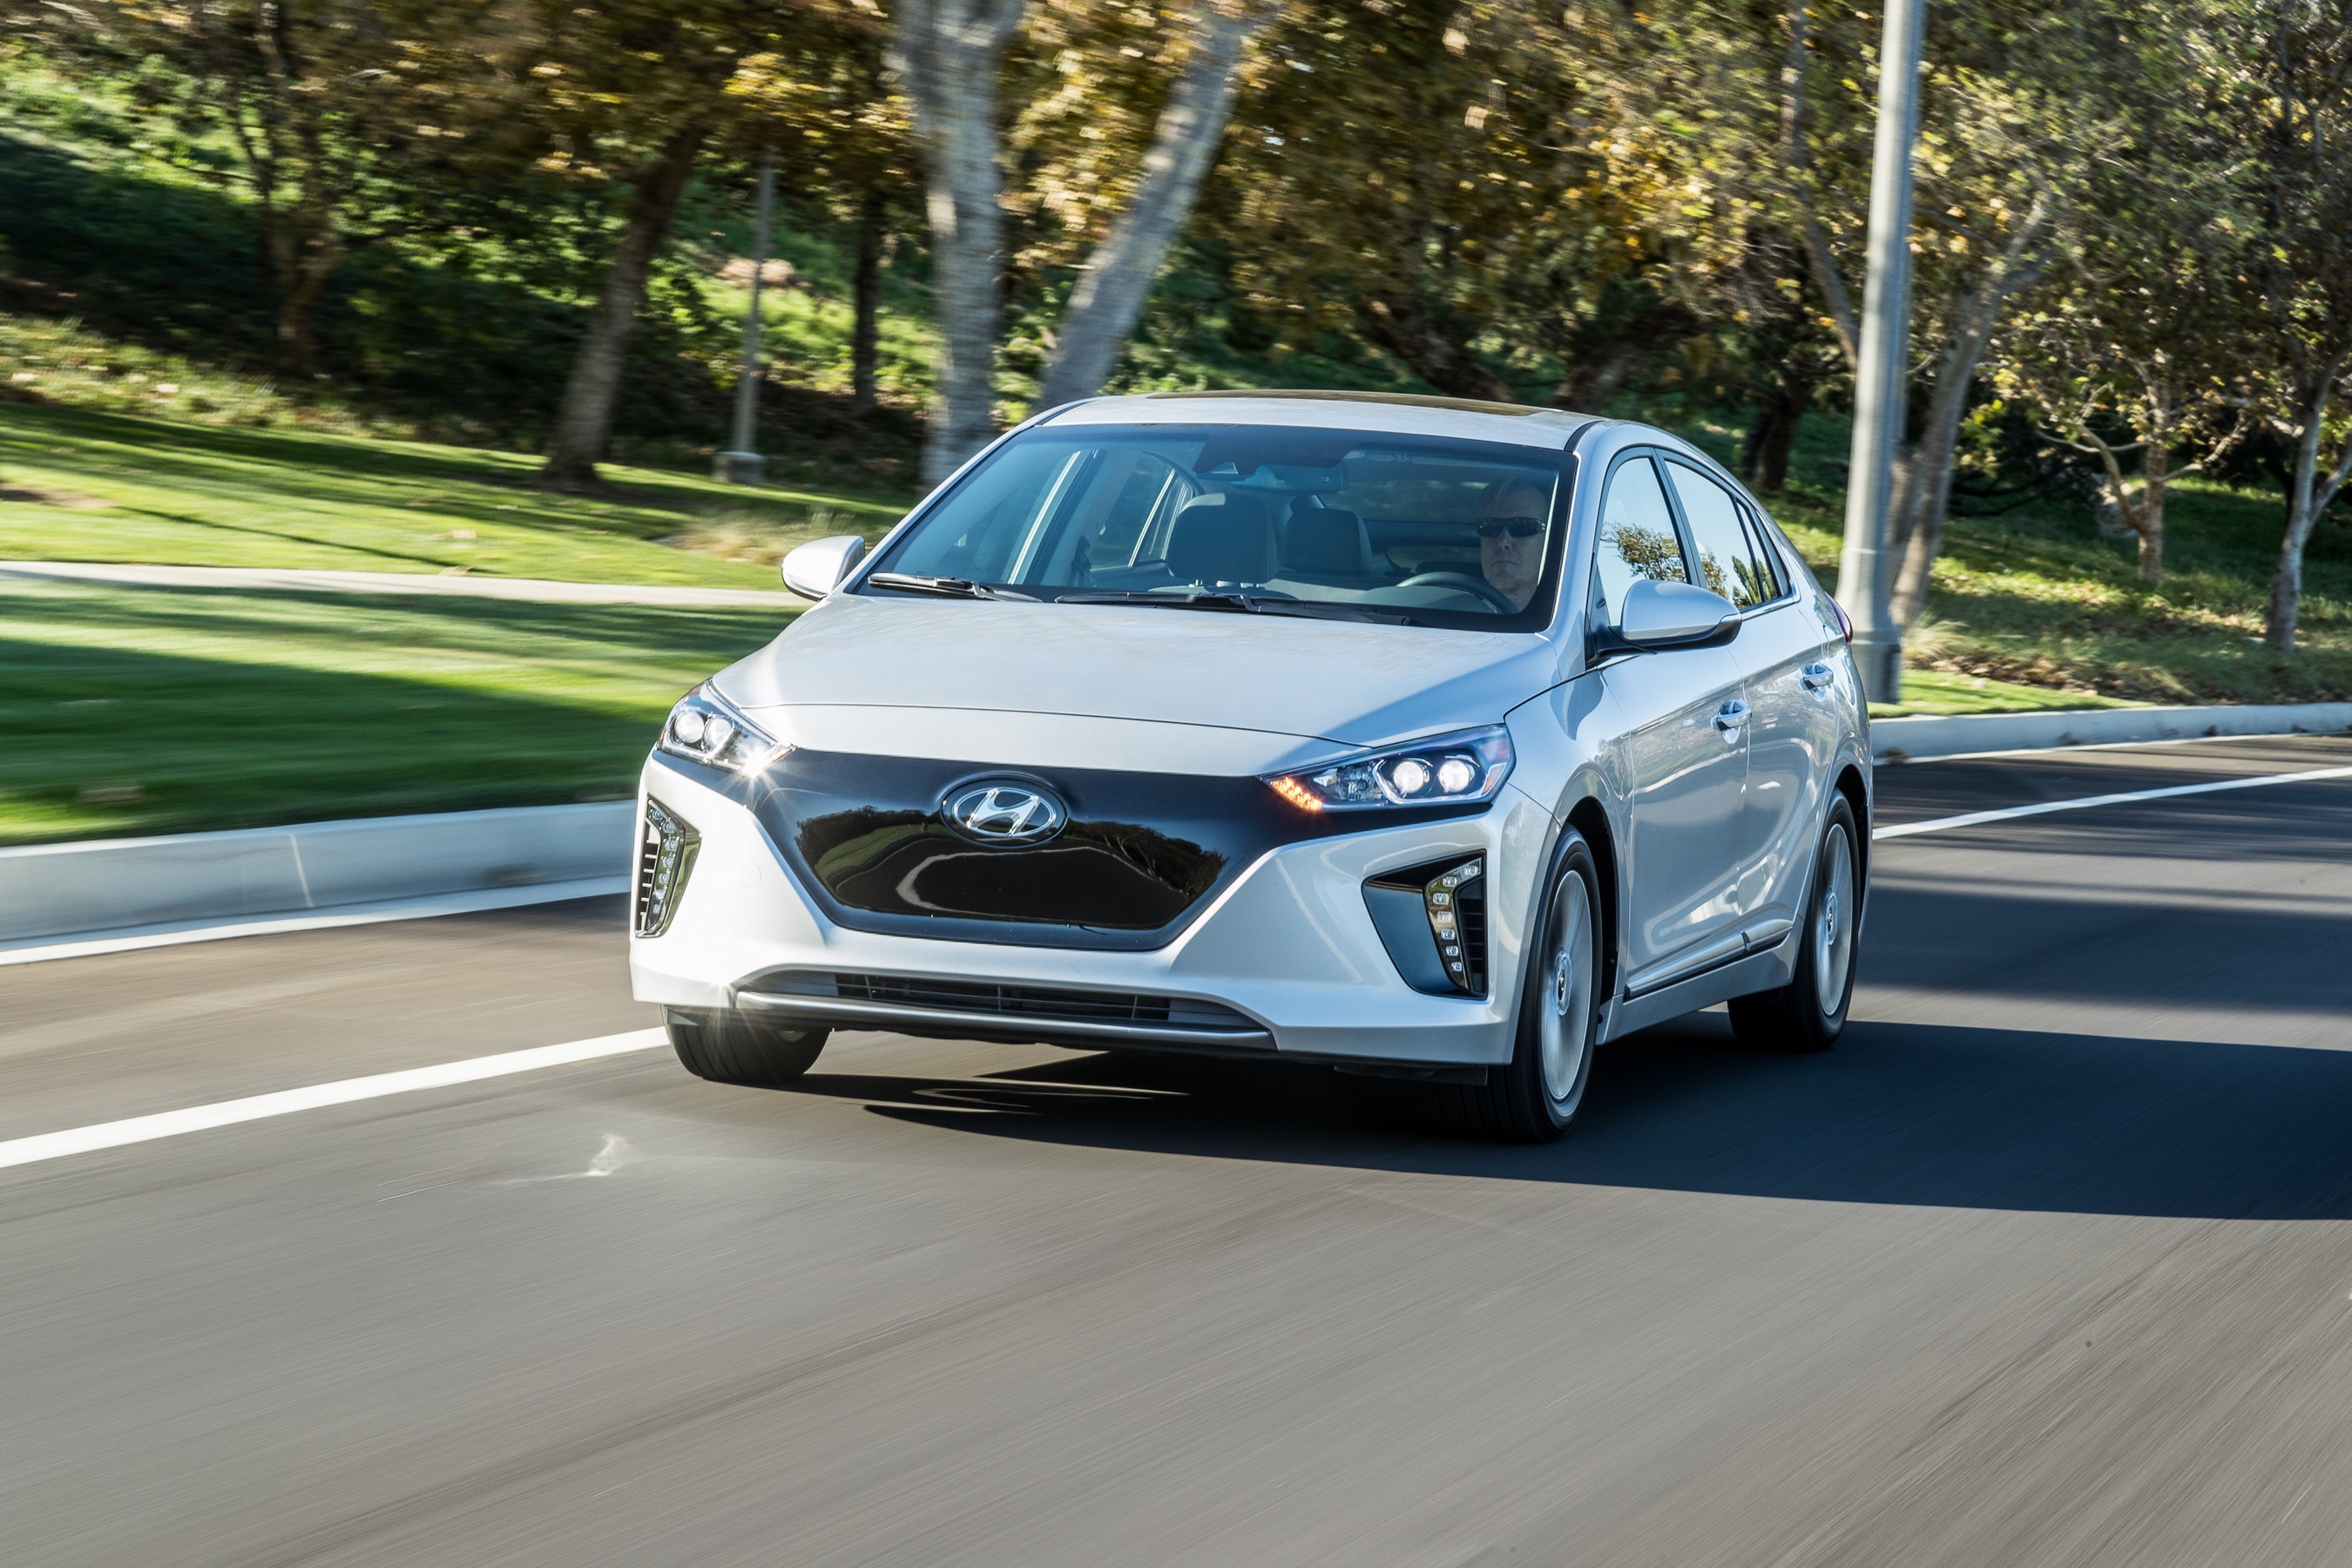 """HYUNDAI ANNOUNCES NEW """"IONIQ UNLIMITED"""" SUBSCRIPTION-BASED OWNERSHIP EXPERIENCE AT THE LOS ANGELES AUTO SHOW"""